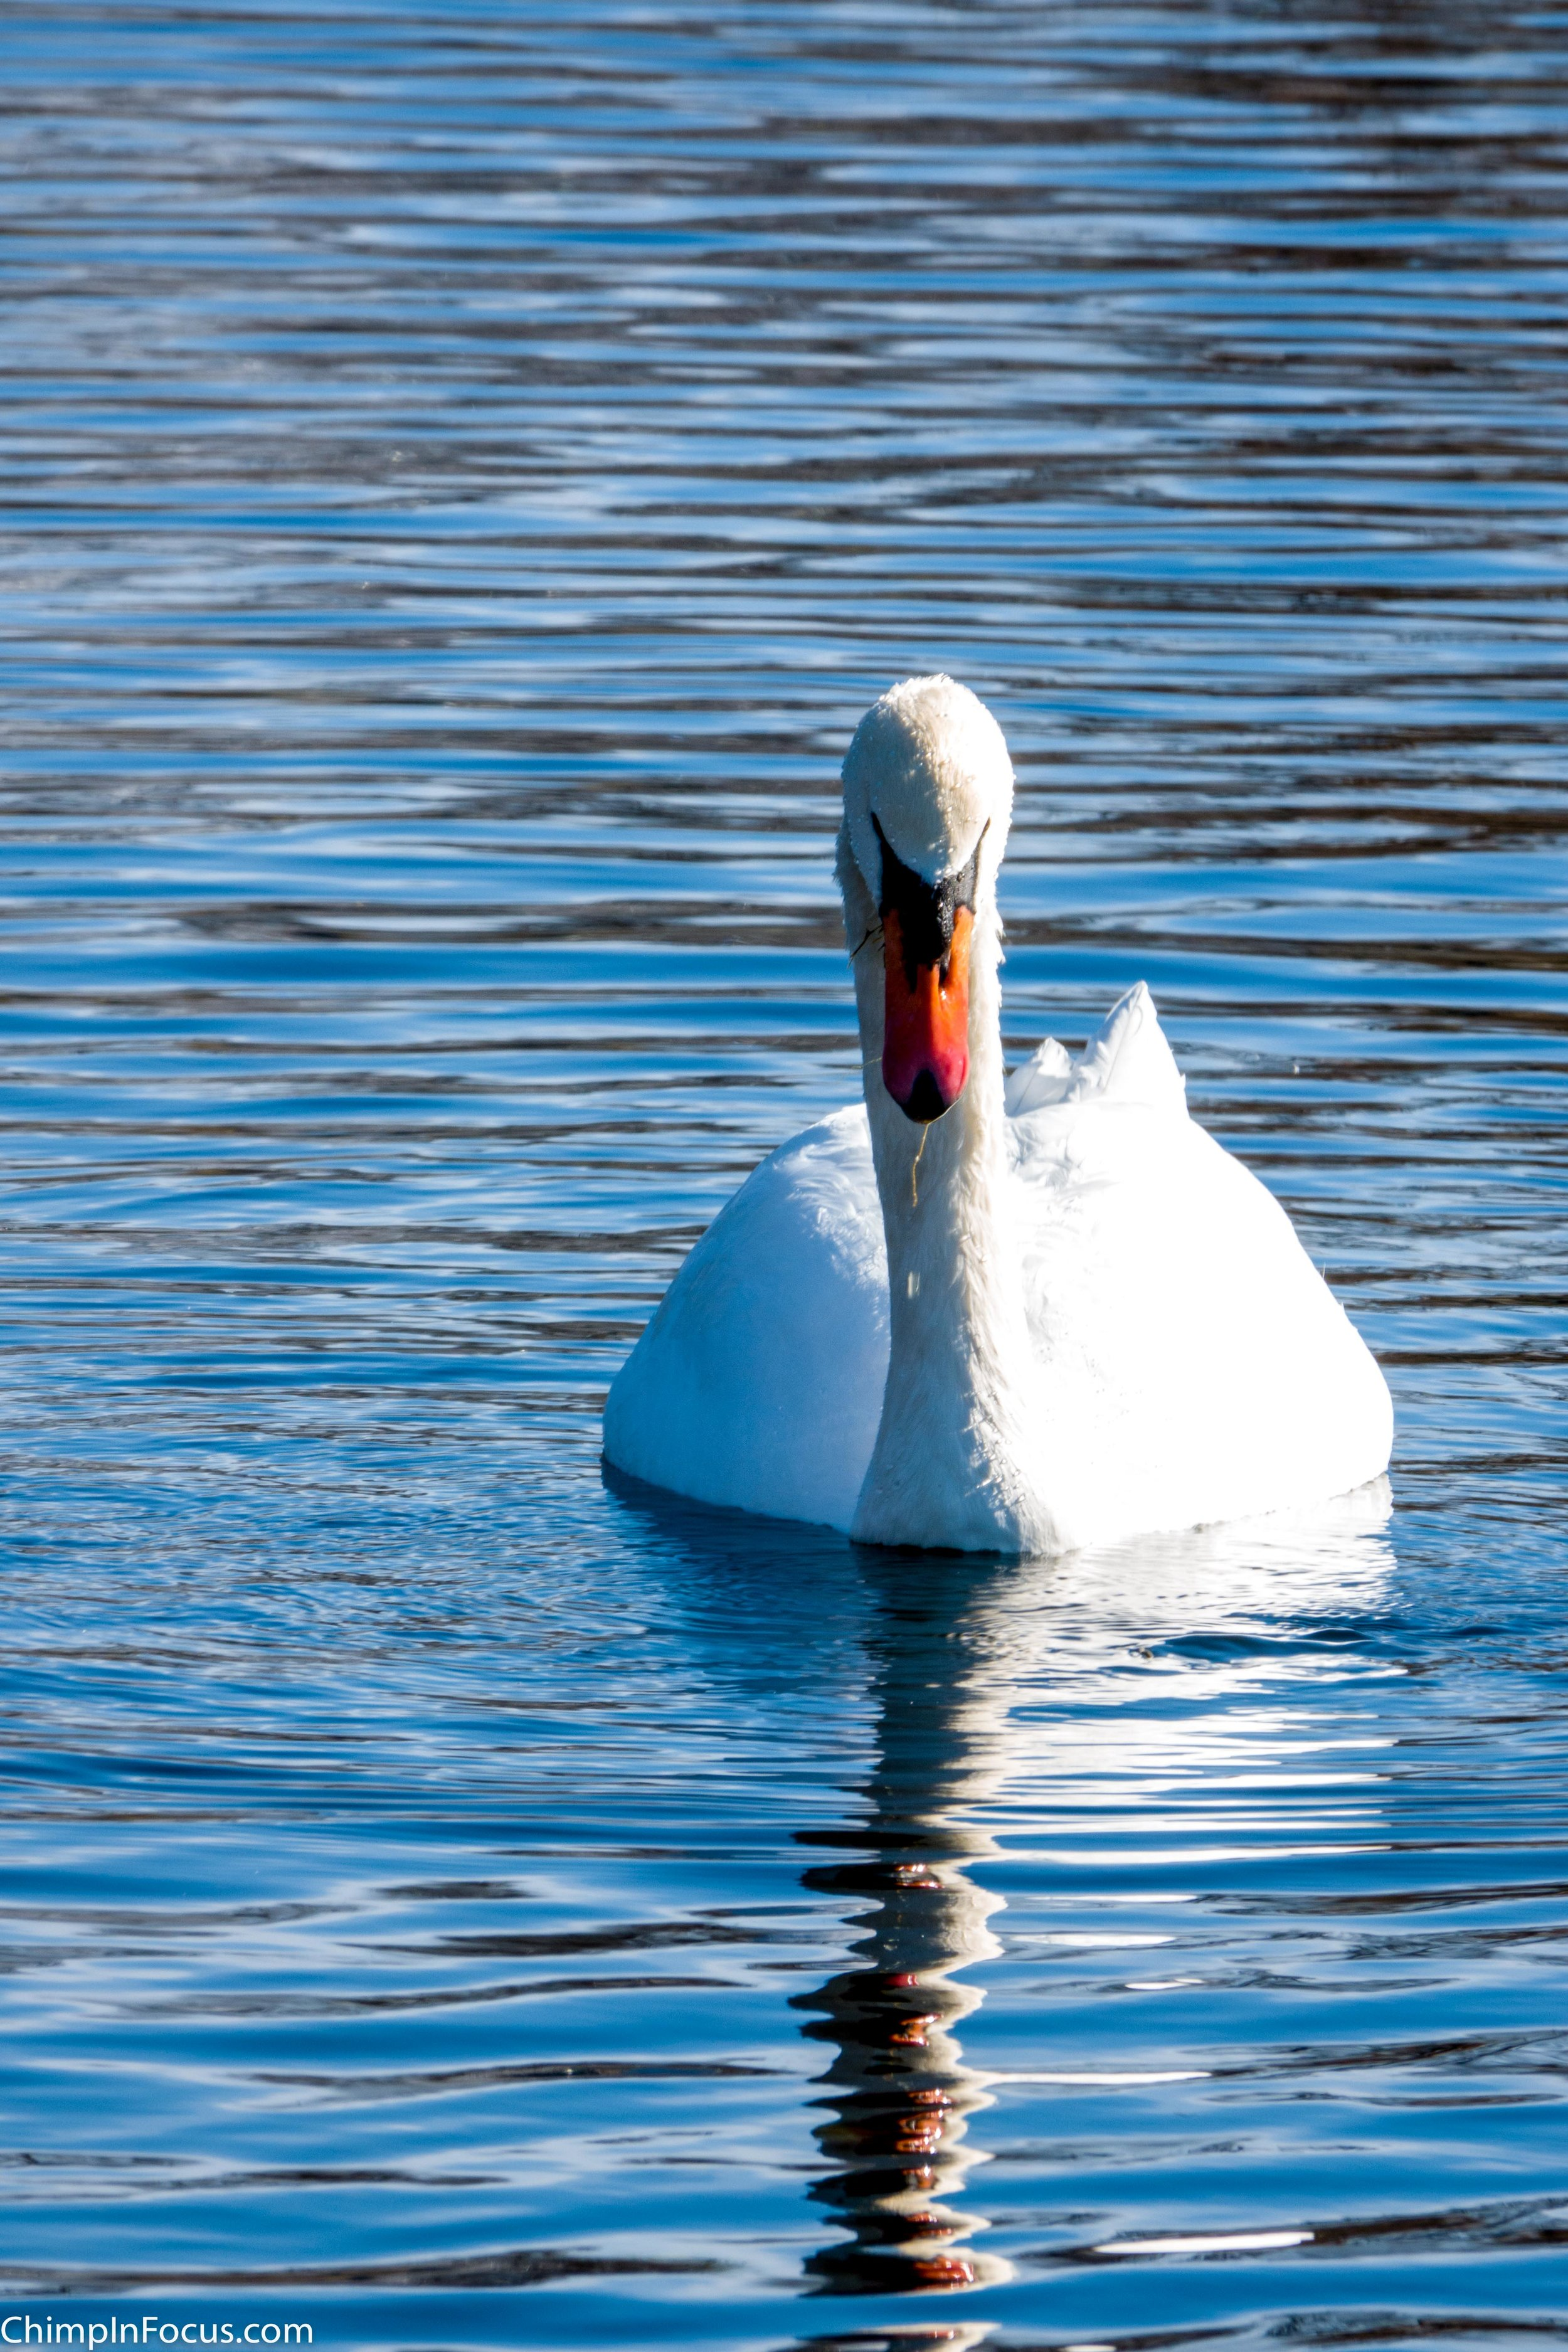 Swan on a rippled mirror lake